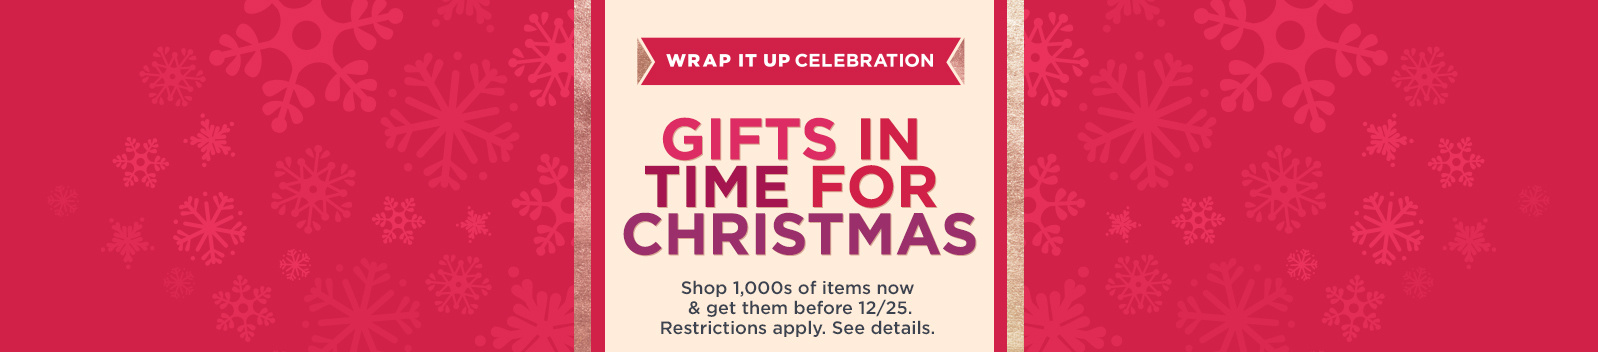 Wrap It Up Celebration — Gifts in Time for Christmas — Shop 1,000s of items now & get them before 12/25. Restrictions apply. See details.